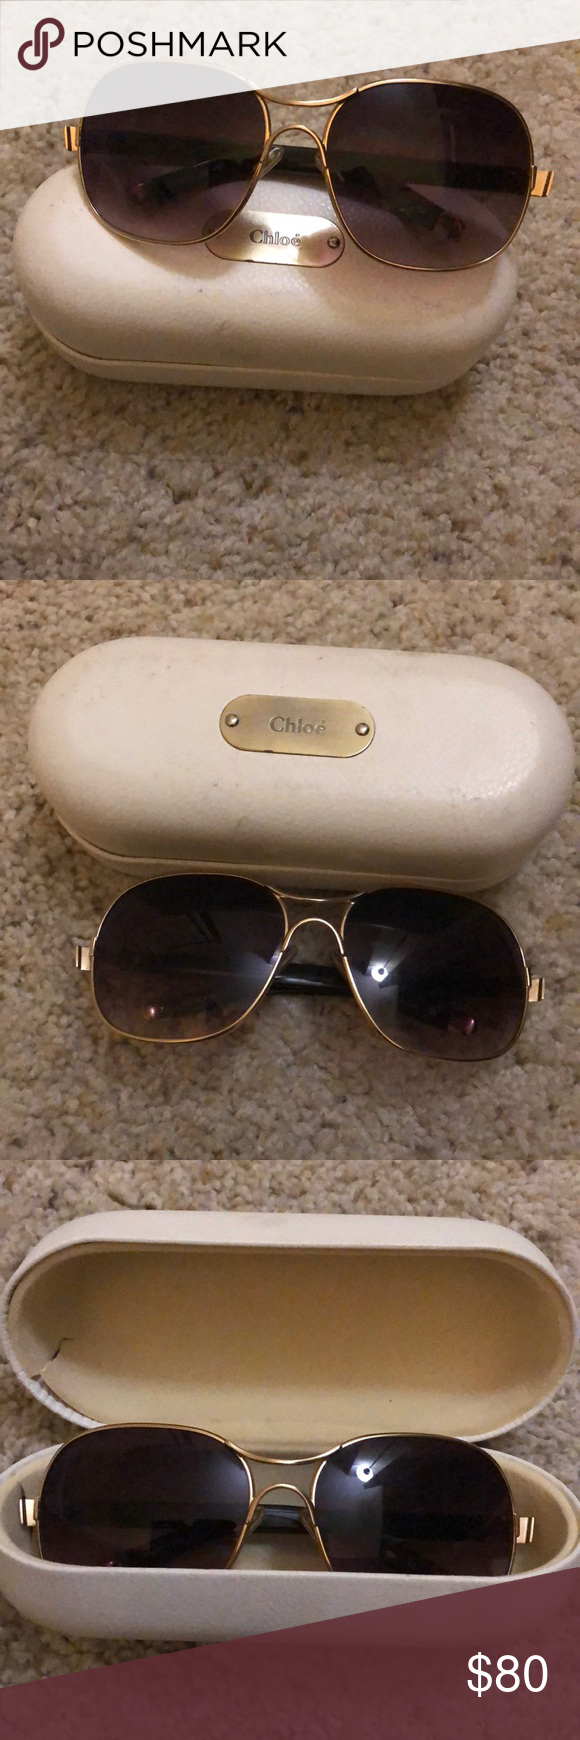 5b6aaa48e457 Chloé sunglasses Edgy original chloé sunglasses Chloe Accessories Glasses